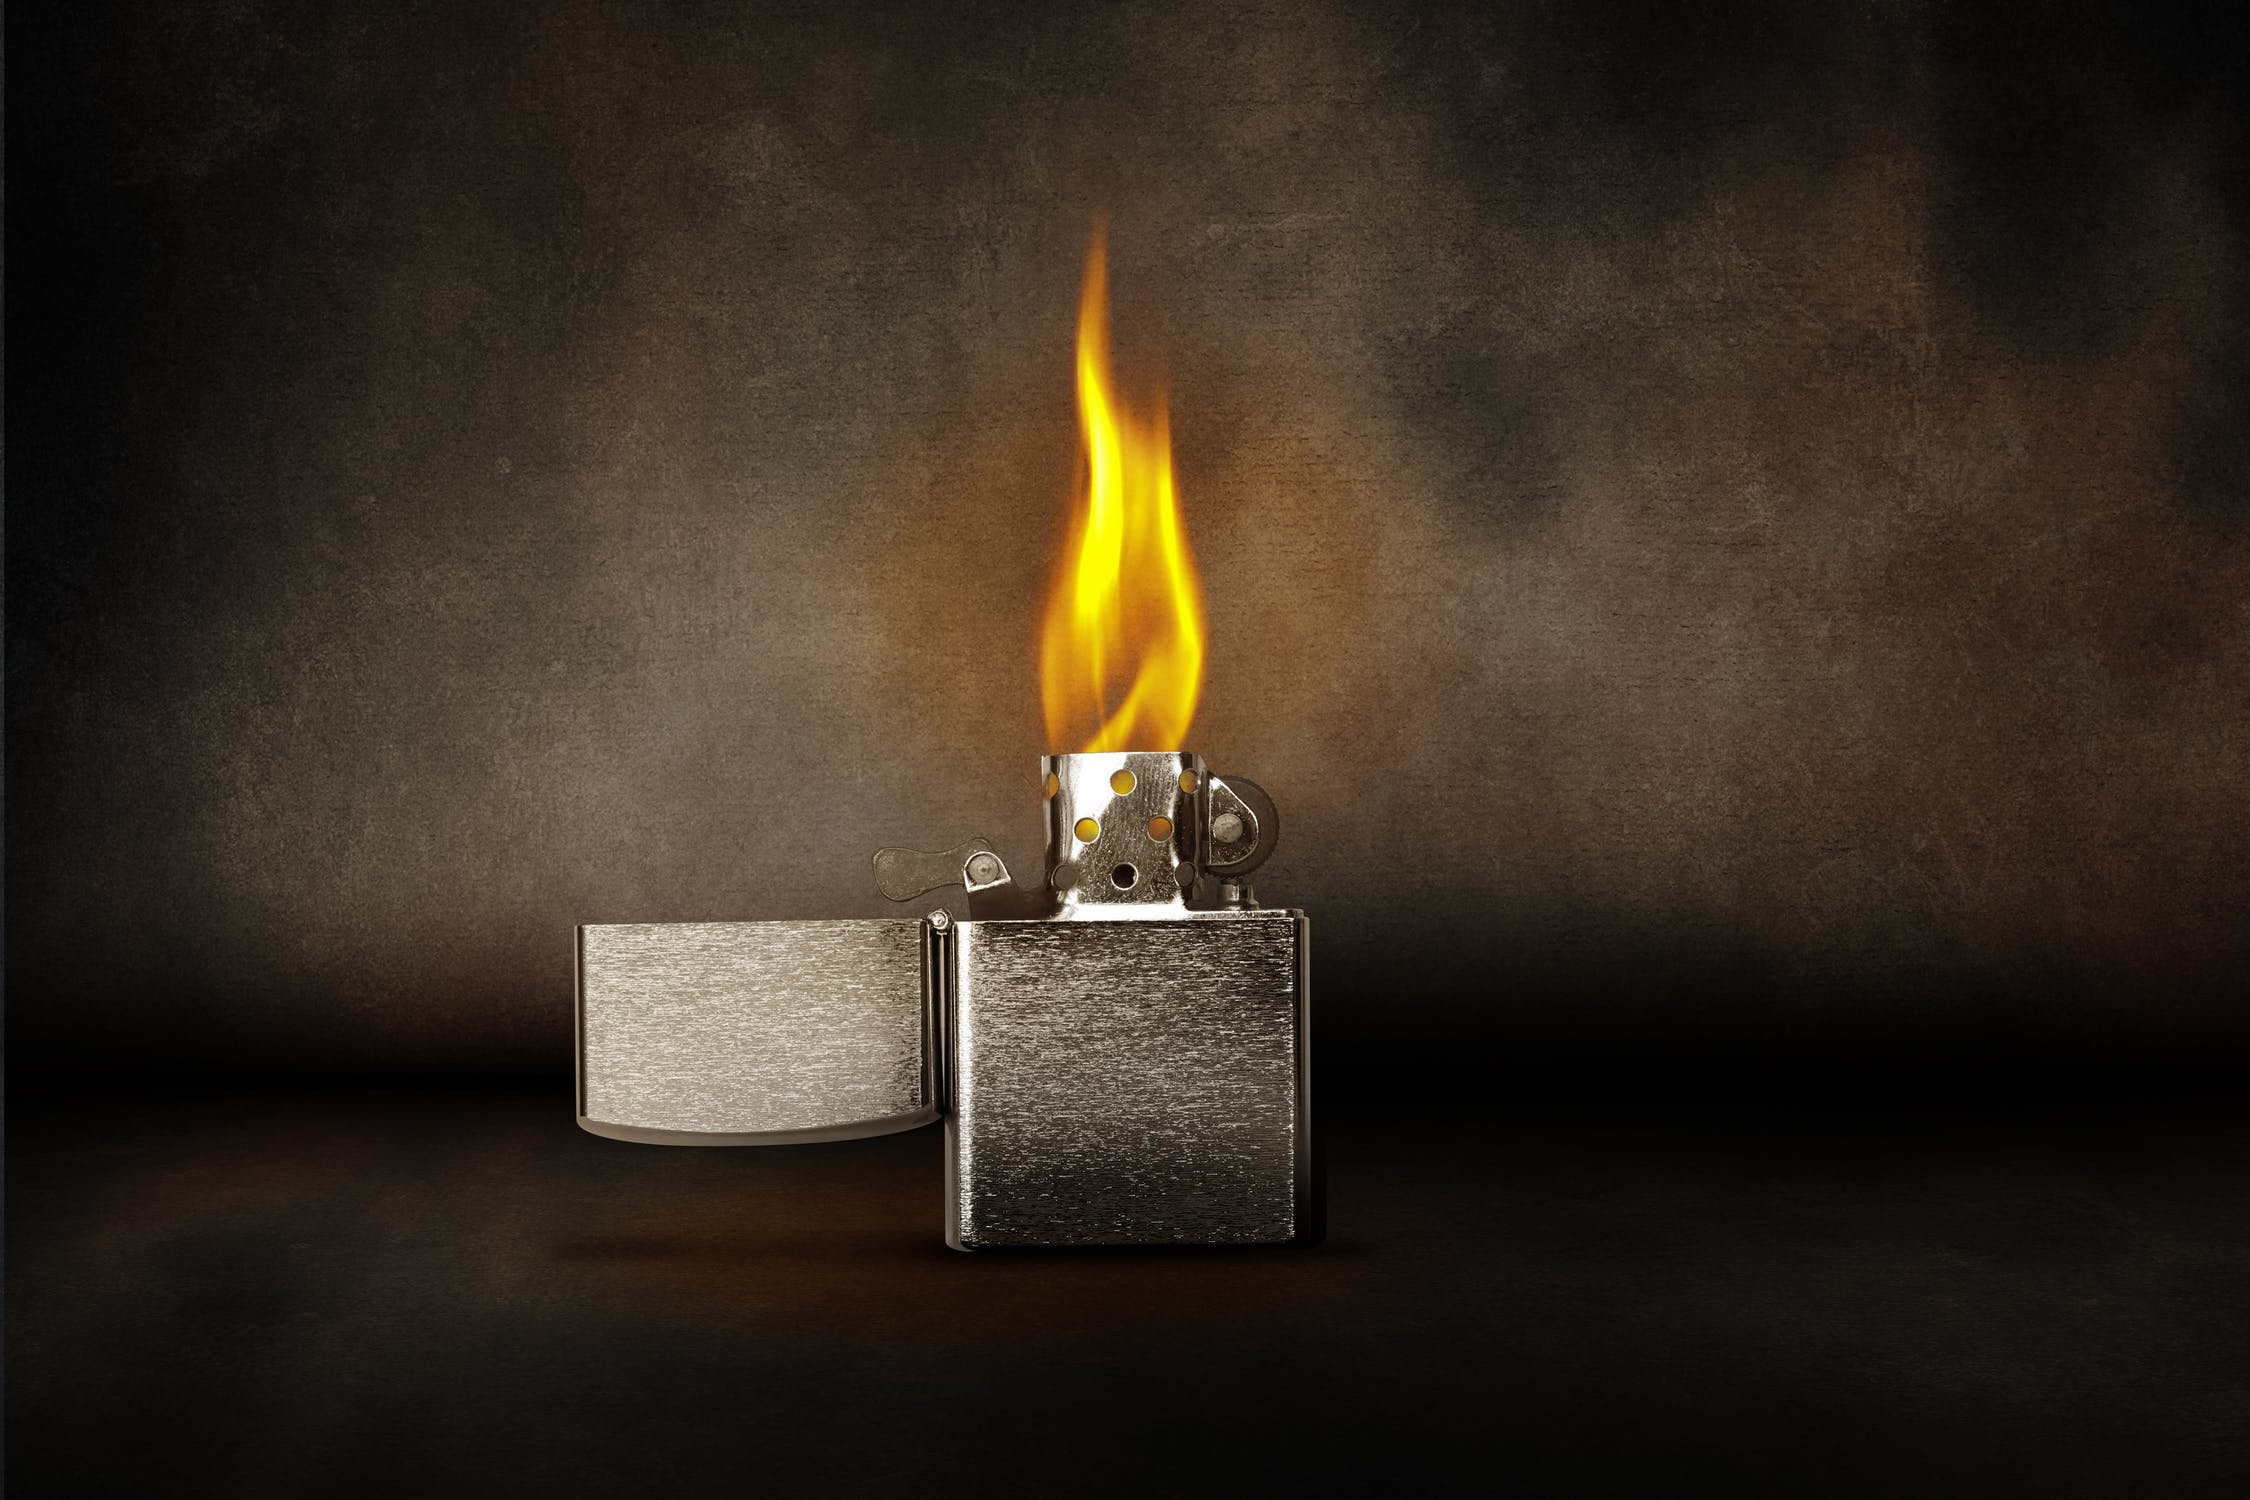 A lighter - which might be considered hazardous.